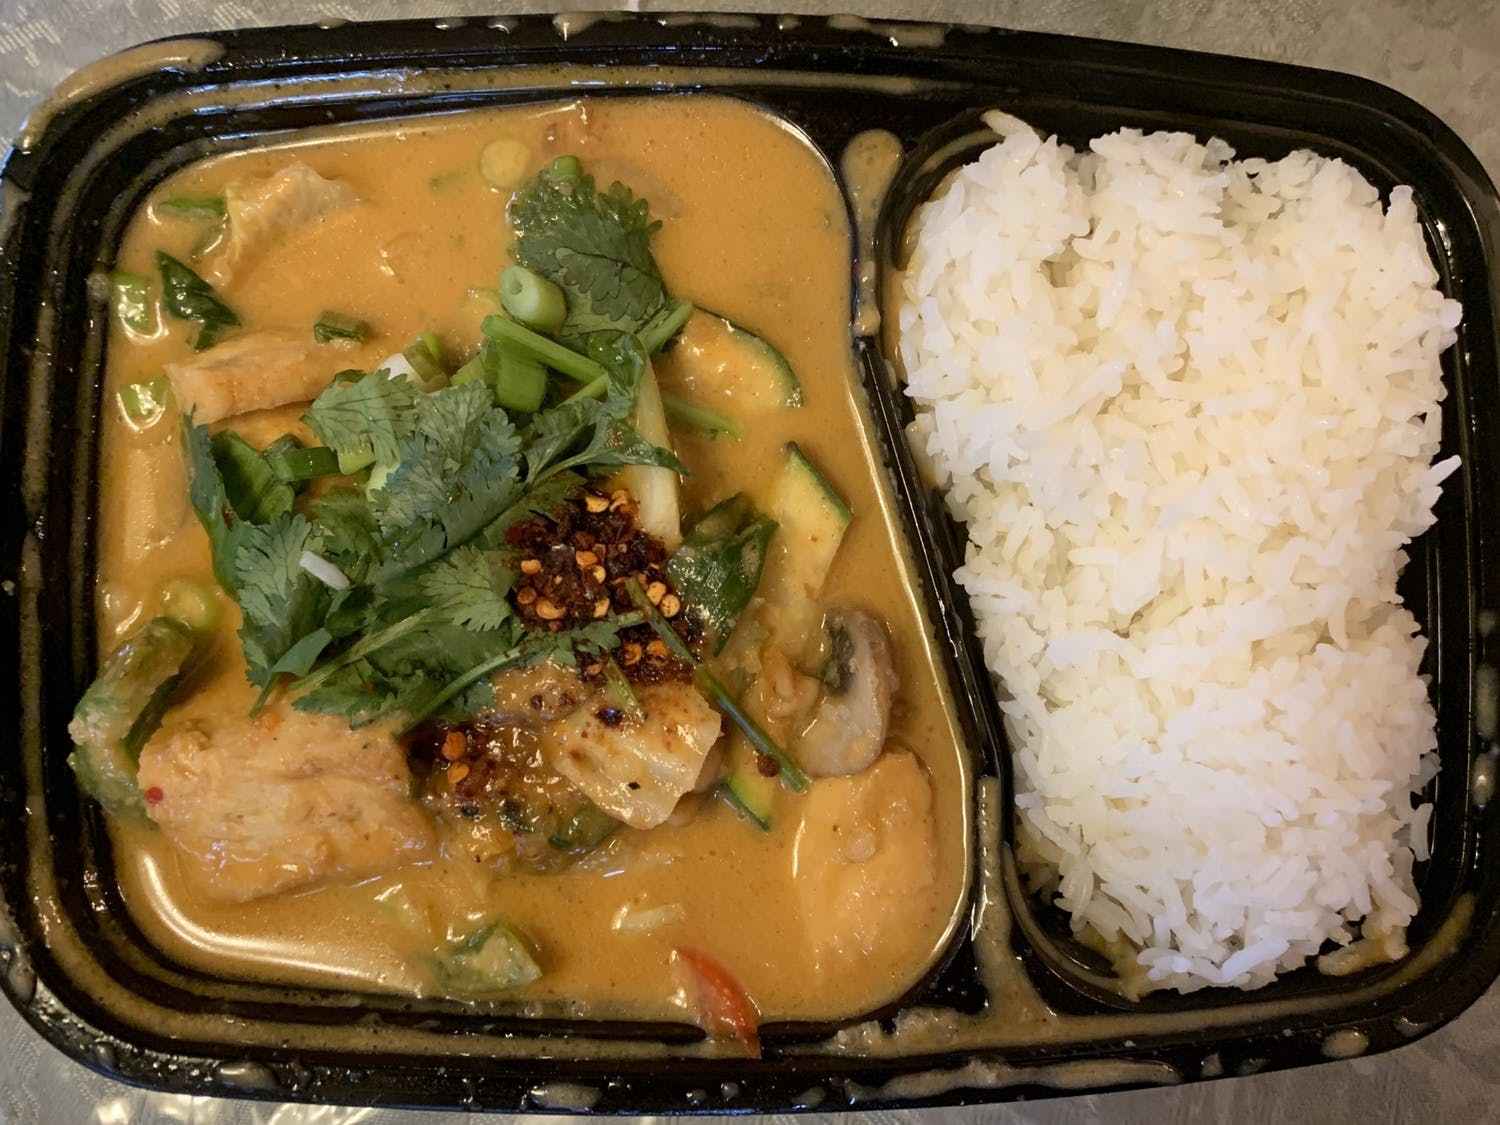 Diced tofu, mixed veggies and a pillow of white rice make a great meatless curry.